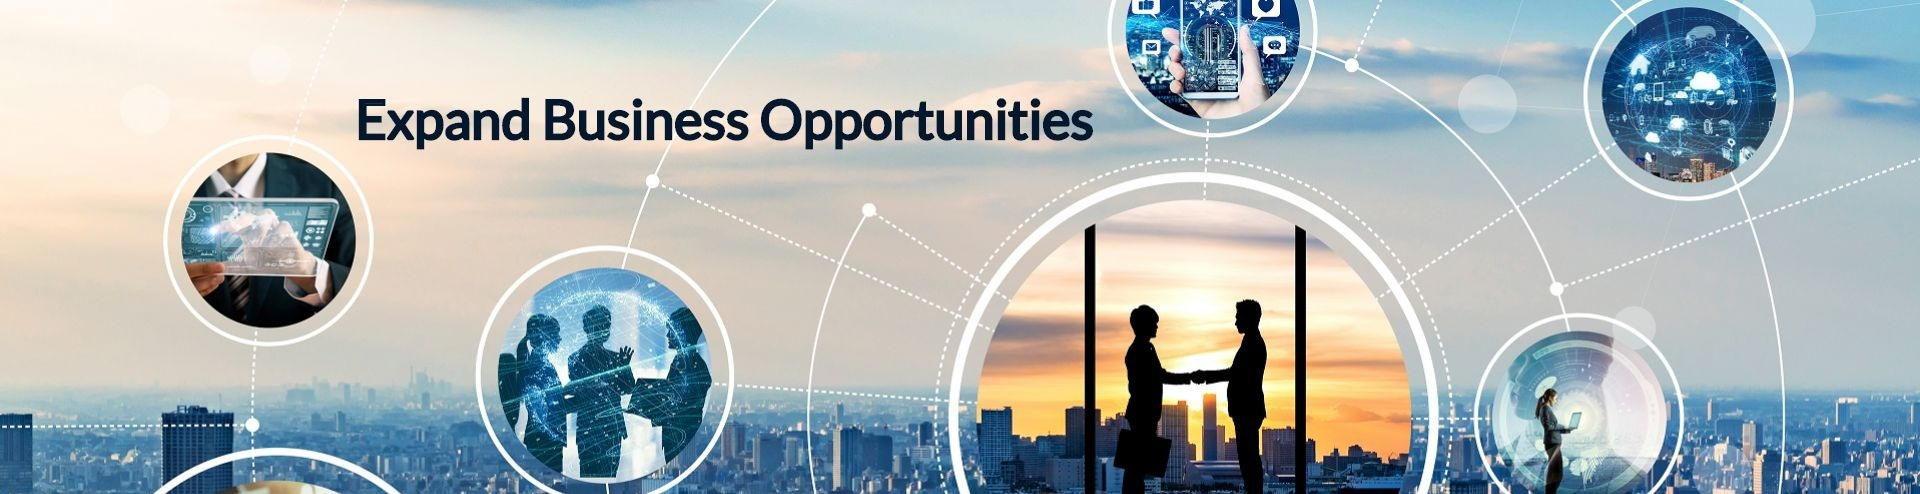 Expand Business Opportunities With The AEC Associates